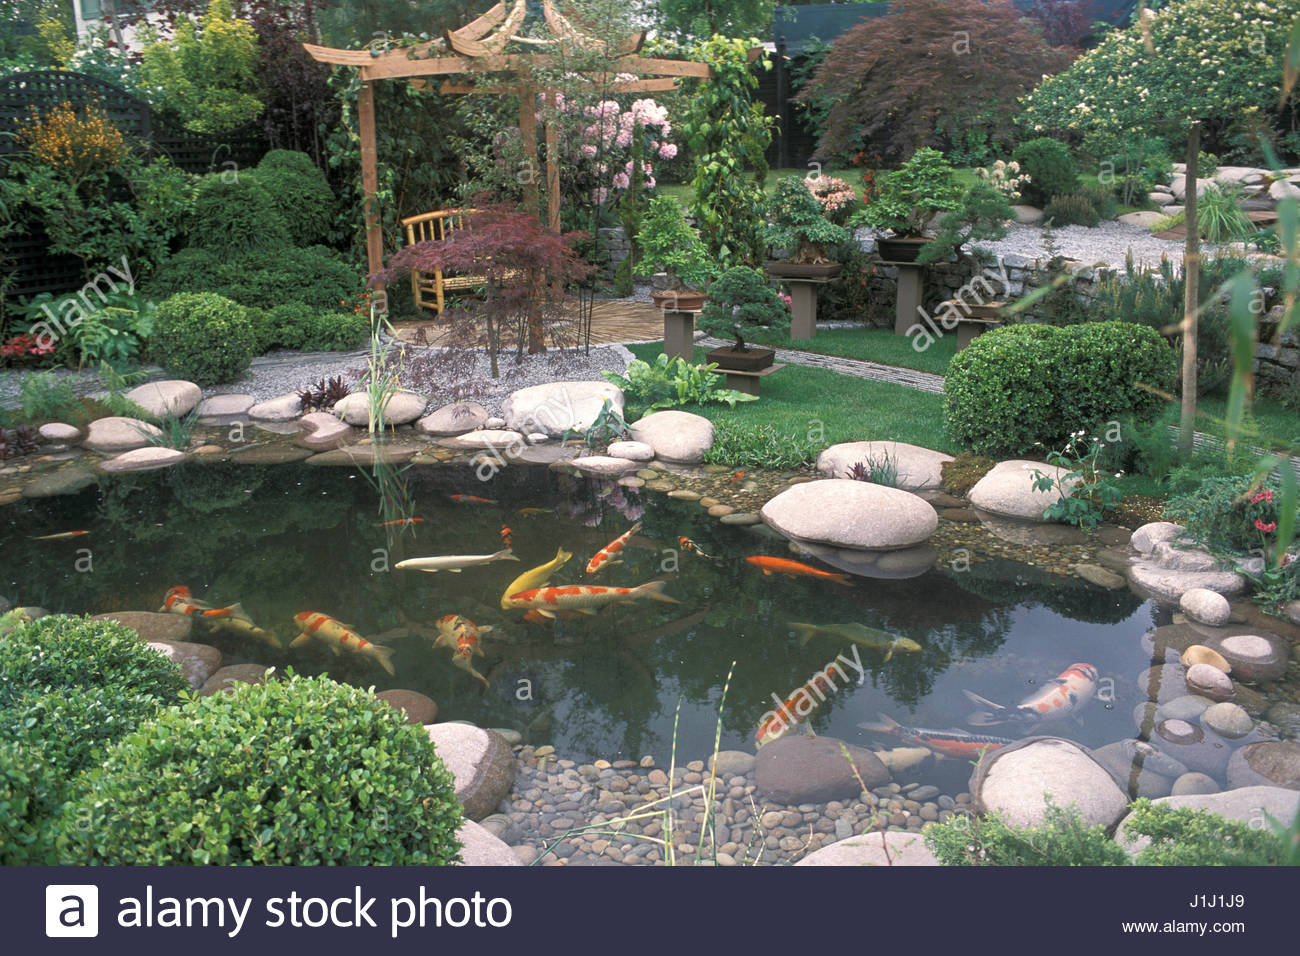 japanese style garden pool with koi carp patio covered by pergola chelsea 2002 wonderful world of koi designer rday and shickling bonsais rhododendrons